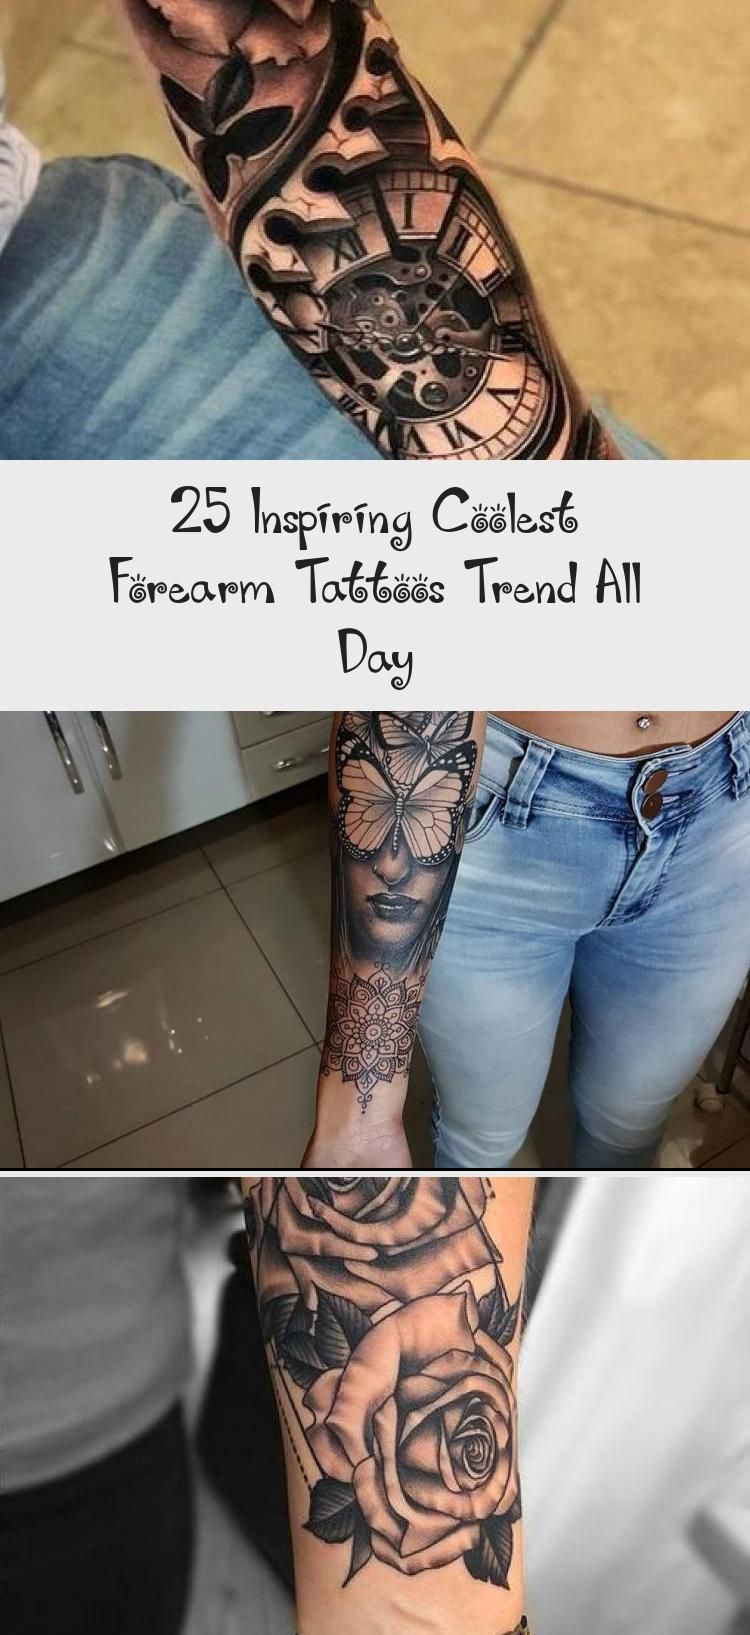 25 Inspiring Coolest Forearm Tattoos Trend All Day - Tattoos and Body Art -  25 Inspiring Coolest Forearm Tattoos Trend All Day #handtattoosQuotes #handtattoosSmall #handtattoo - #art #beetatto #body #coolest #Day #dinnerrecipes #foottatto #forearm #forearmtatto #inspiring #sistertatto #skulltatto #tattofamily #tattovrouw #tattoos #trend